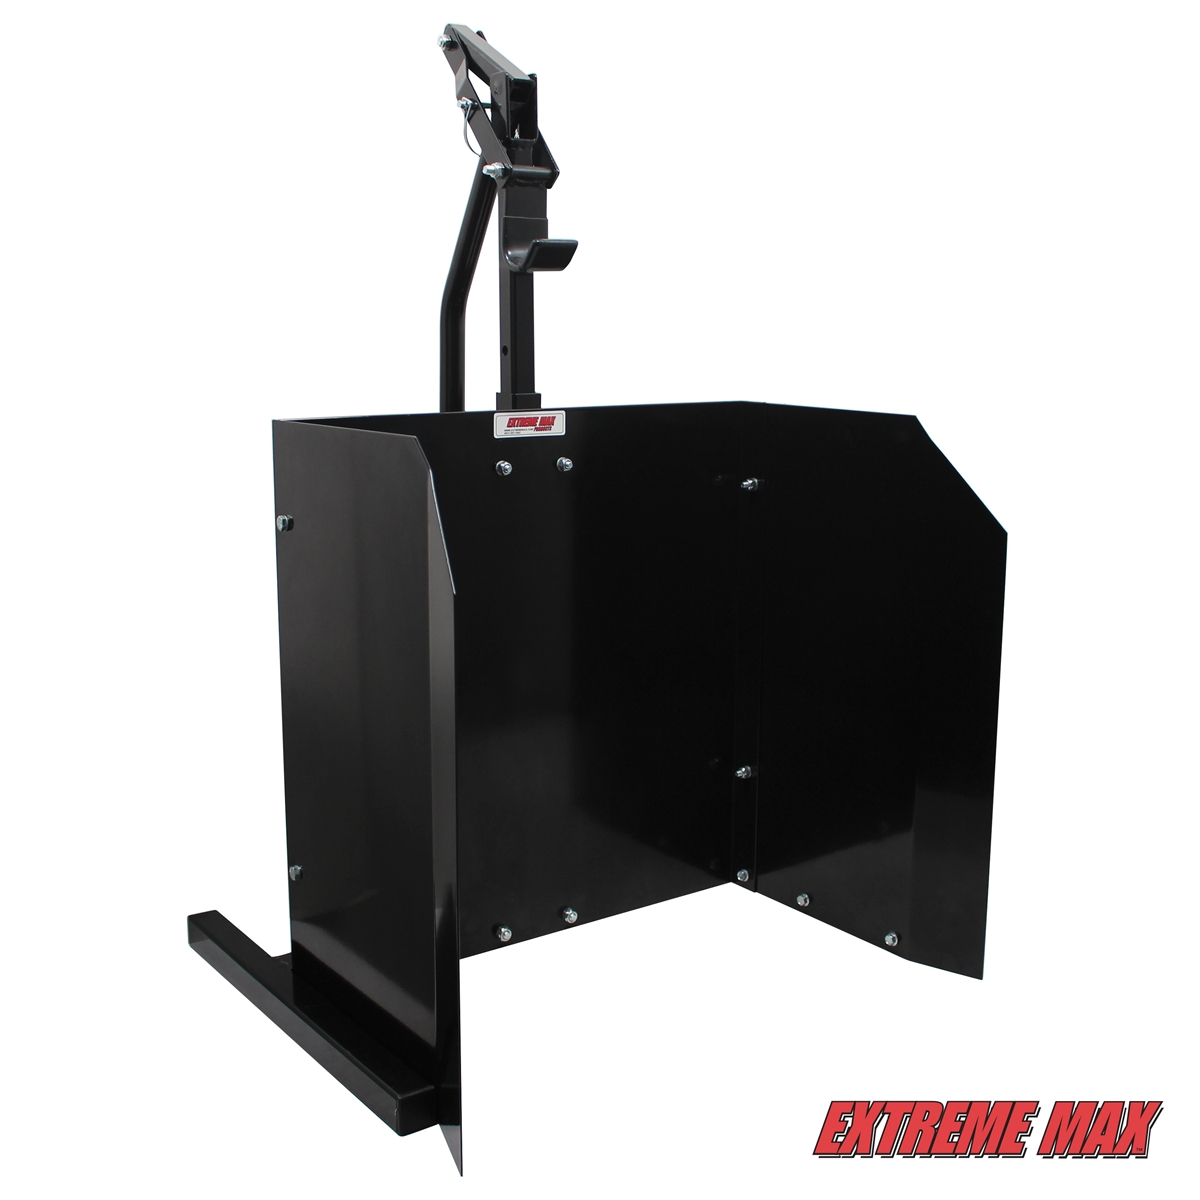 Lever Lift Stand : Extreme max  lever lift stand with warm up shield